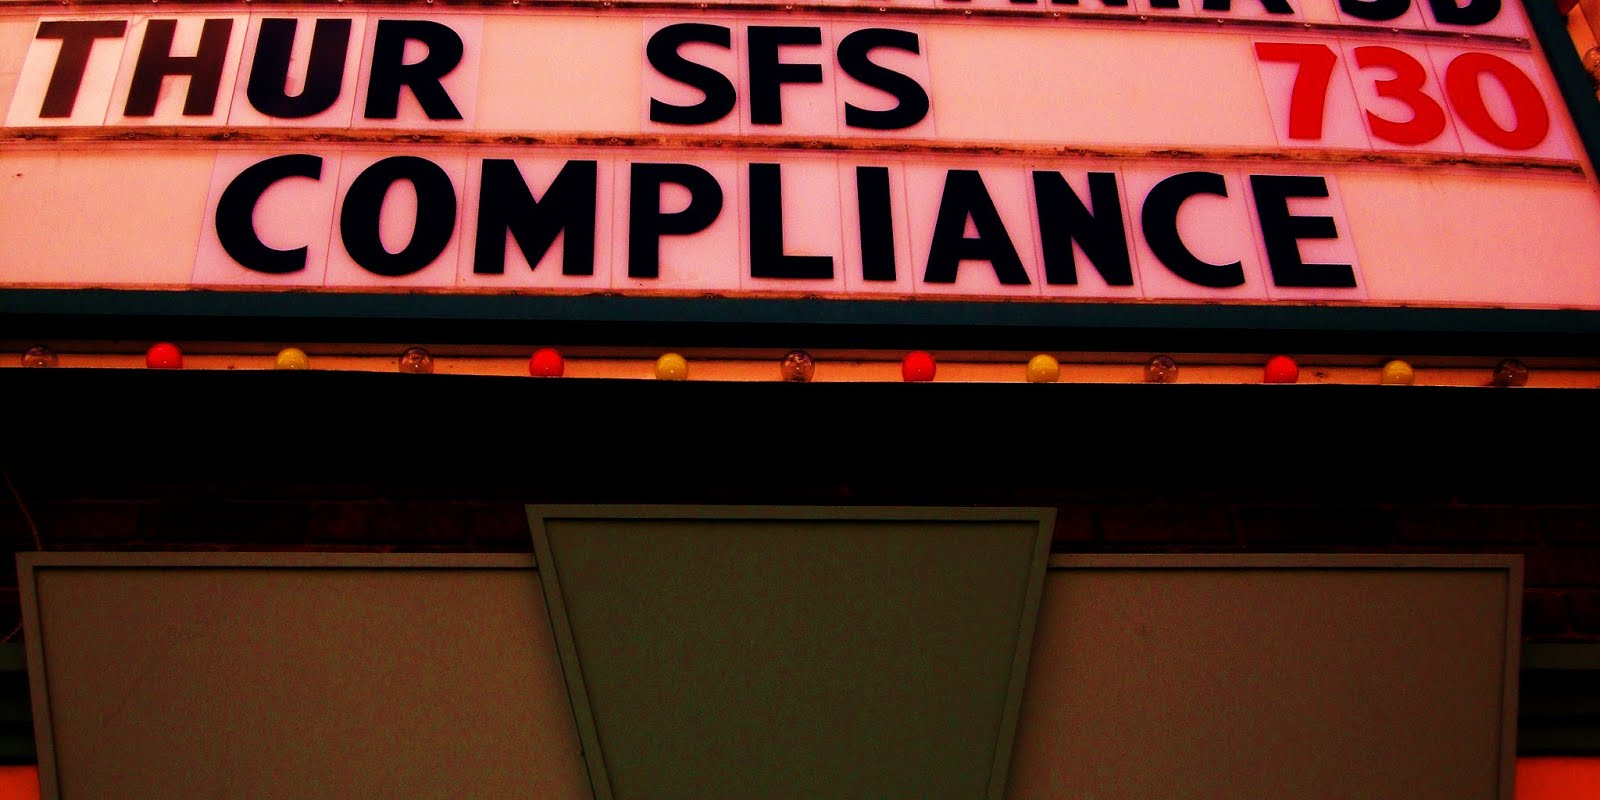 COMPLIANCE.. it is a problem...